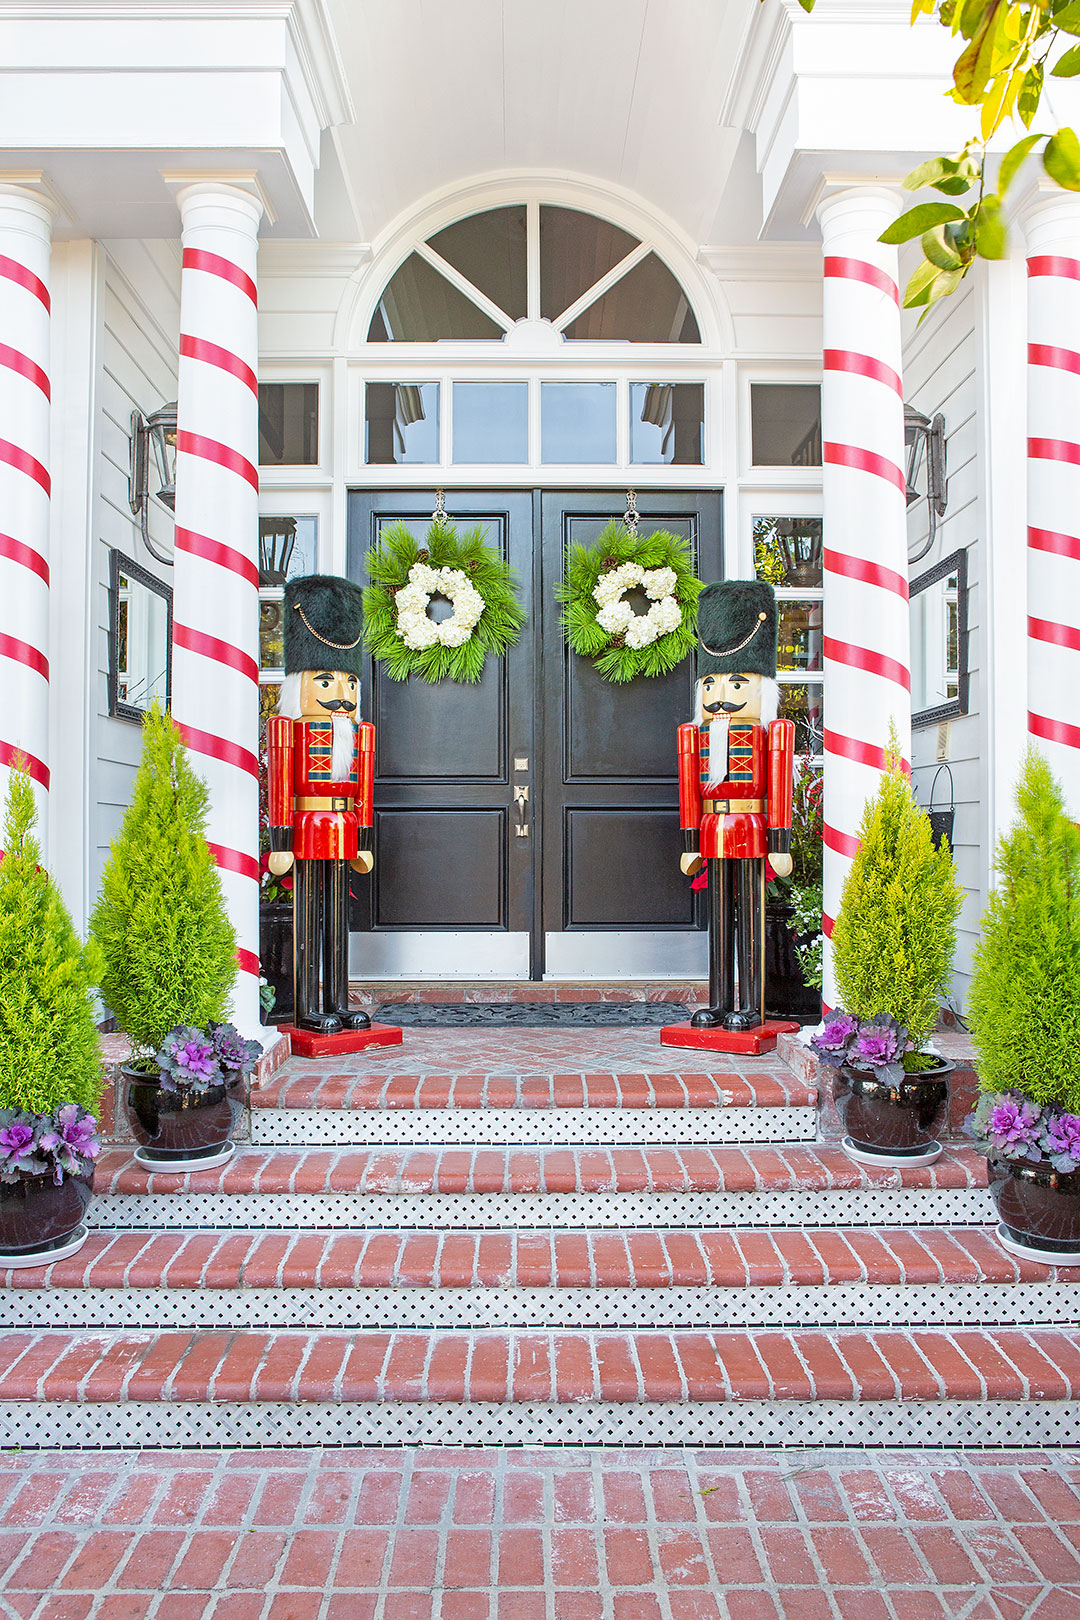 Christmas porch decor with two giant nutcrackers, candy candy columns, and wreaths on the door